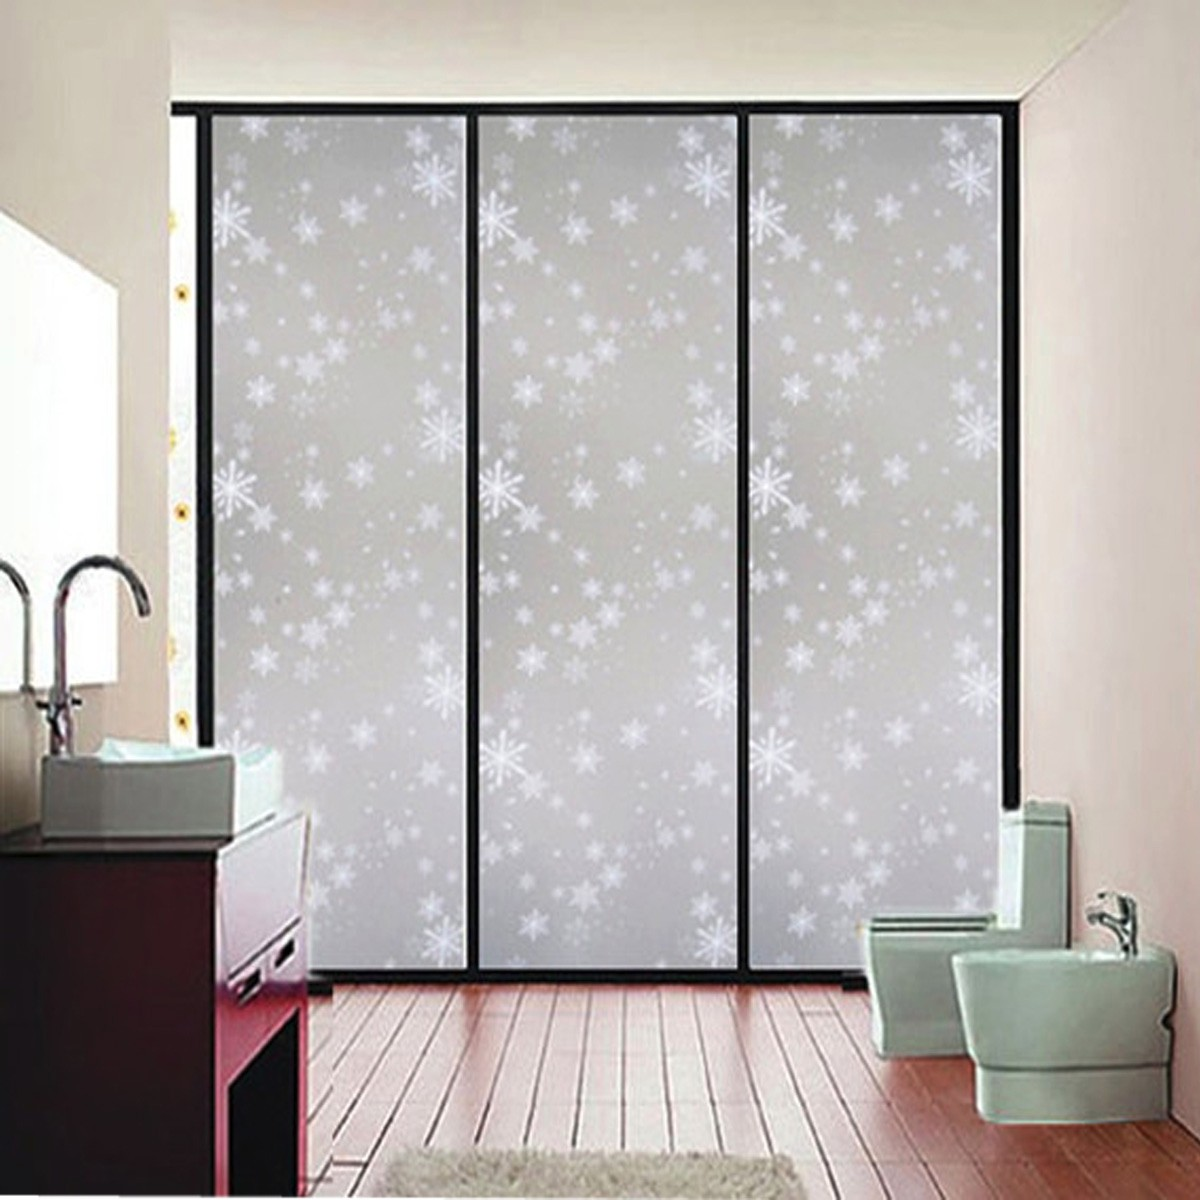 45x200cm waterproof frosted privacy bedroom bathroom for Opaque glass for bathroom windows